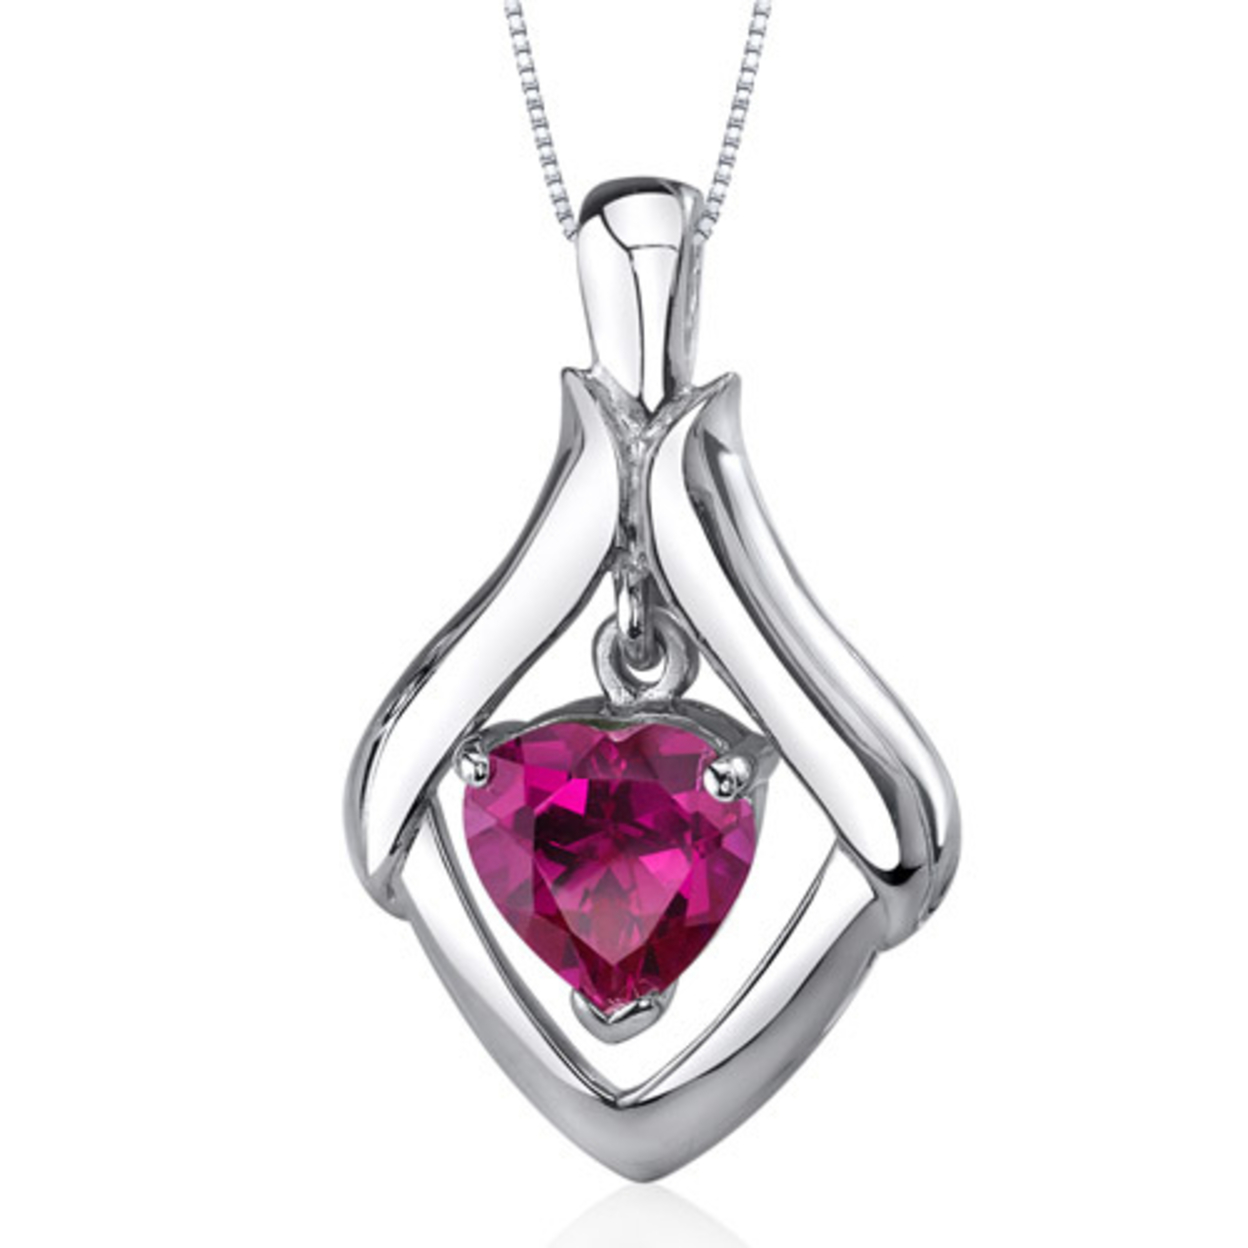 Exuberant Love 3.50 Carats Heart Shape Sterling Silver Ruby Pendant Style Sp9788